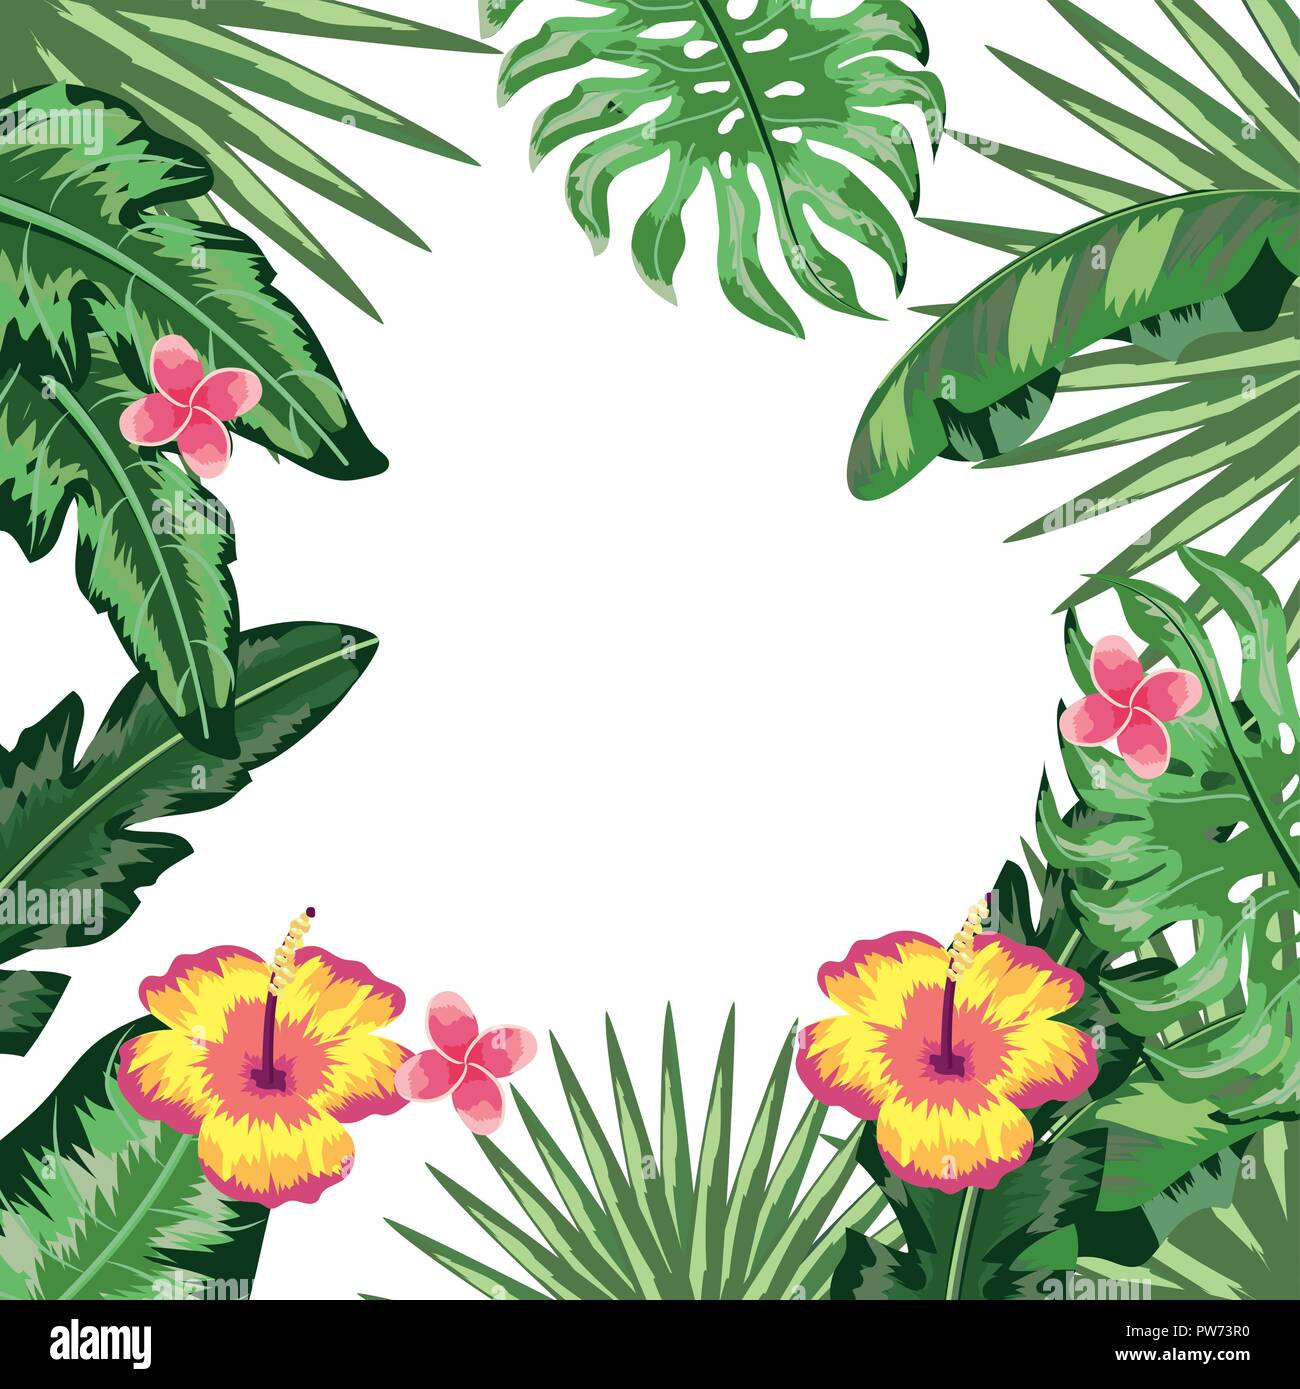 Tropical Leaves And Flowers Background Stock Vector Image Art Alamy 60pcs tropical party decorations supplies tropical palm leaves hibiscus flowers simulation beautiful summer flowers,could use it for hawaiian leis, tropical hawaiian flower headband or hair. https www alamy com tropical leaves and flowers background image222047476 html